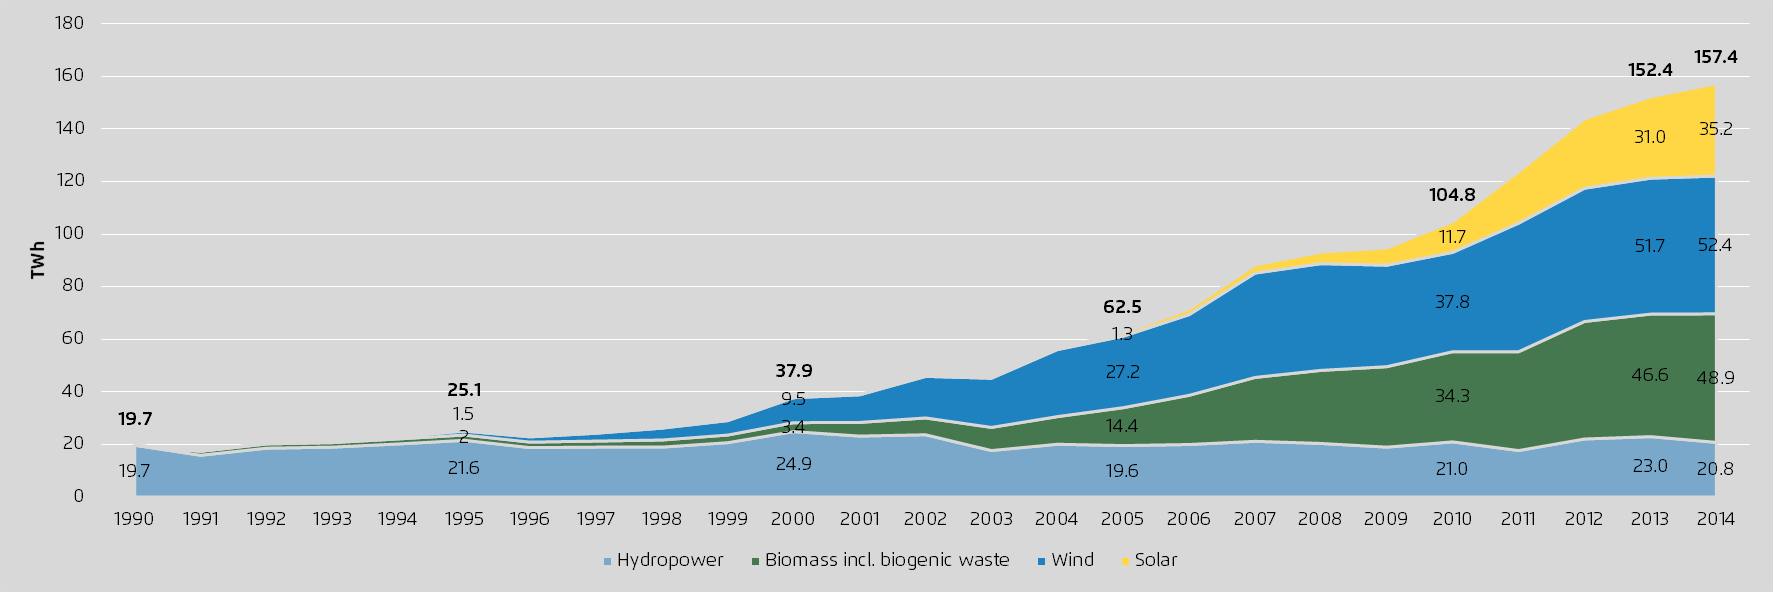 Renewables produced eight times more power in 2014 than in 1990.